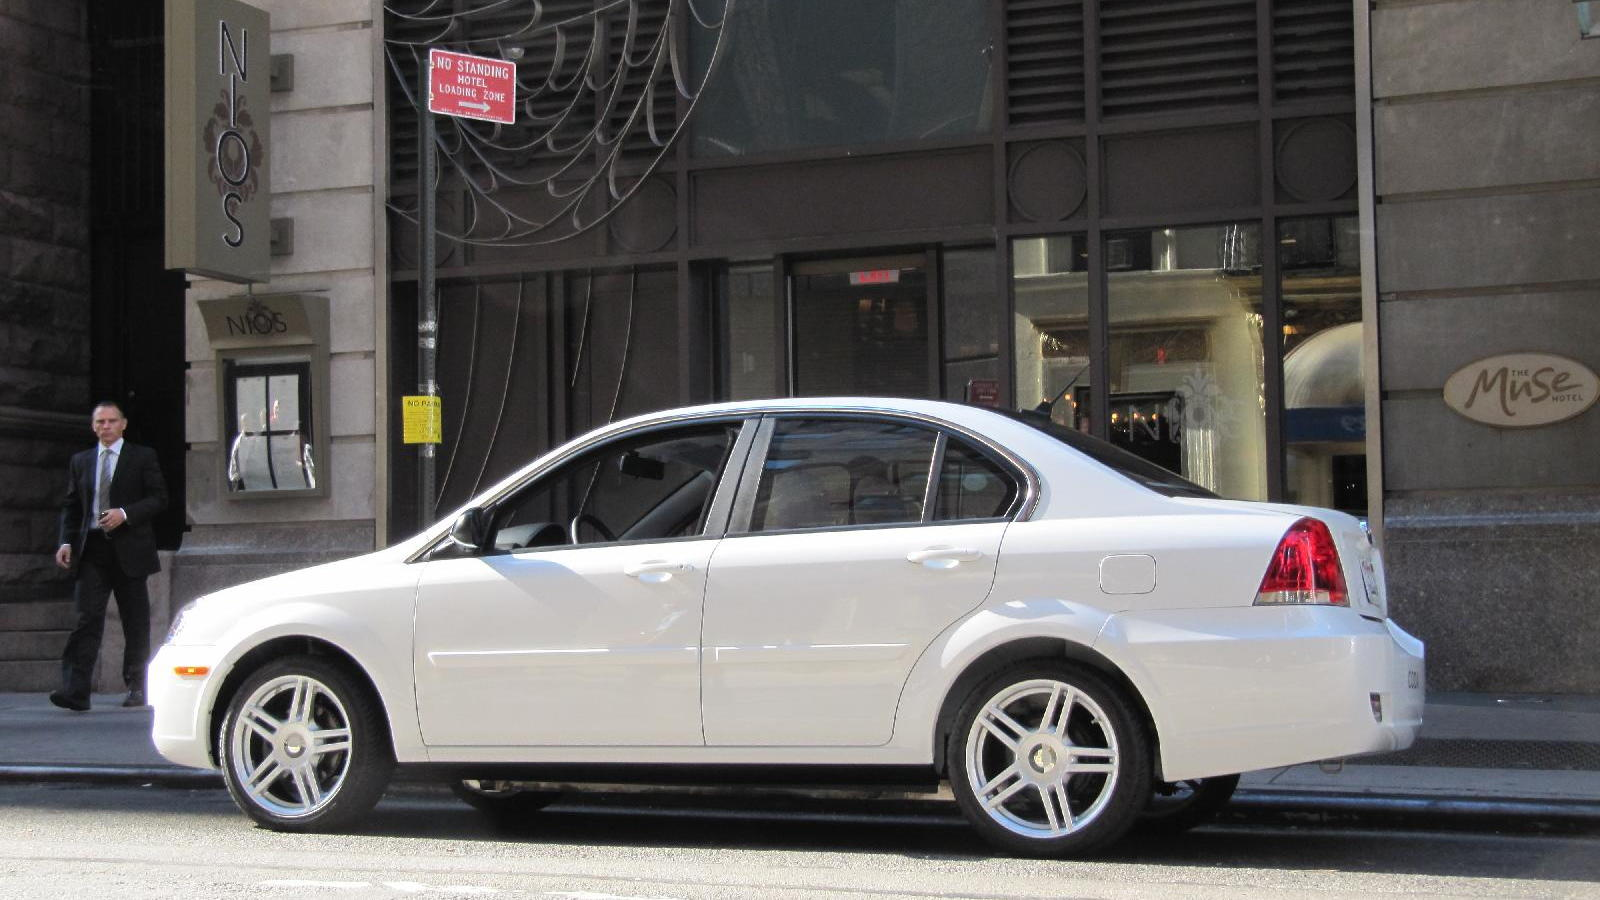 2011 Coda Sedan electric car, New York City, September 2010